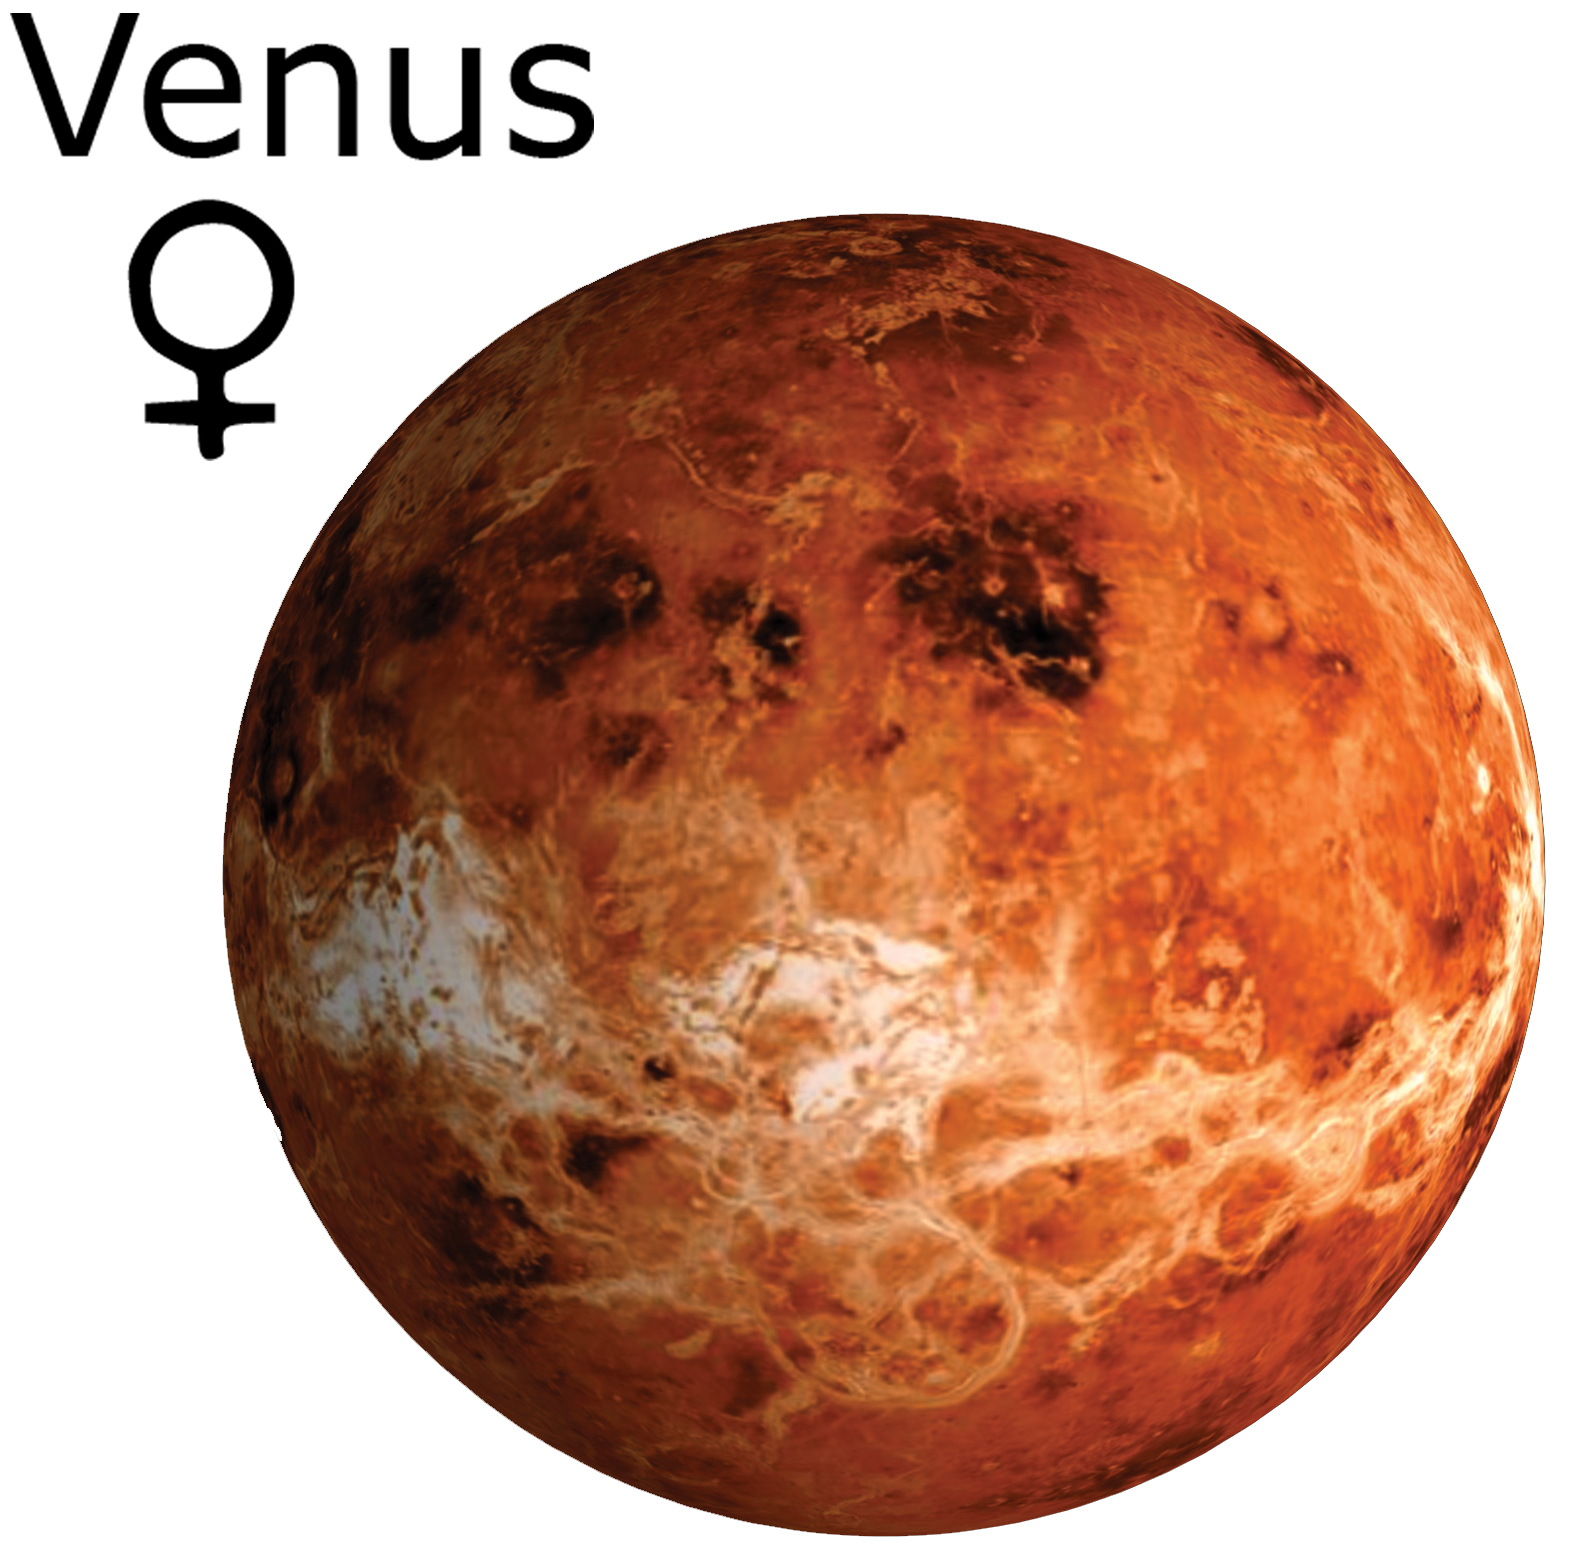 venus the planet is brown why - photo #17